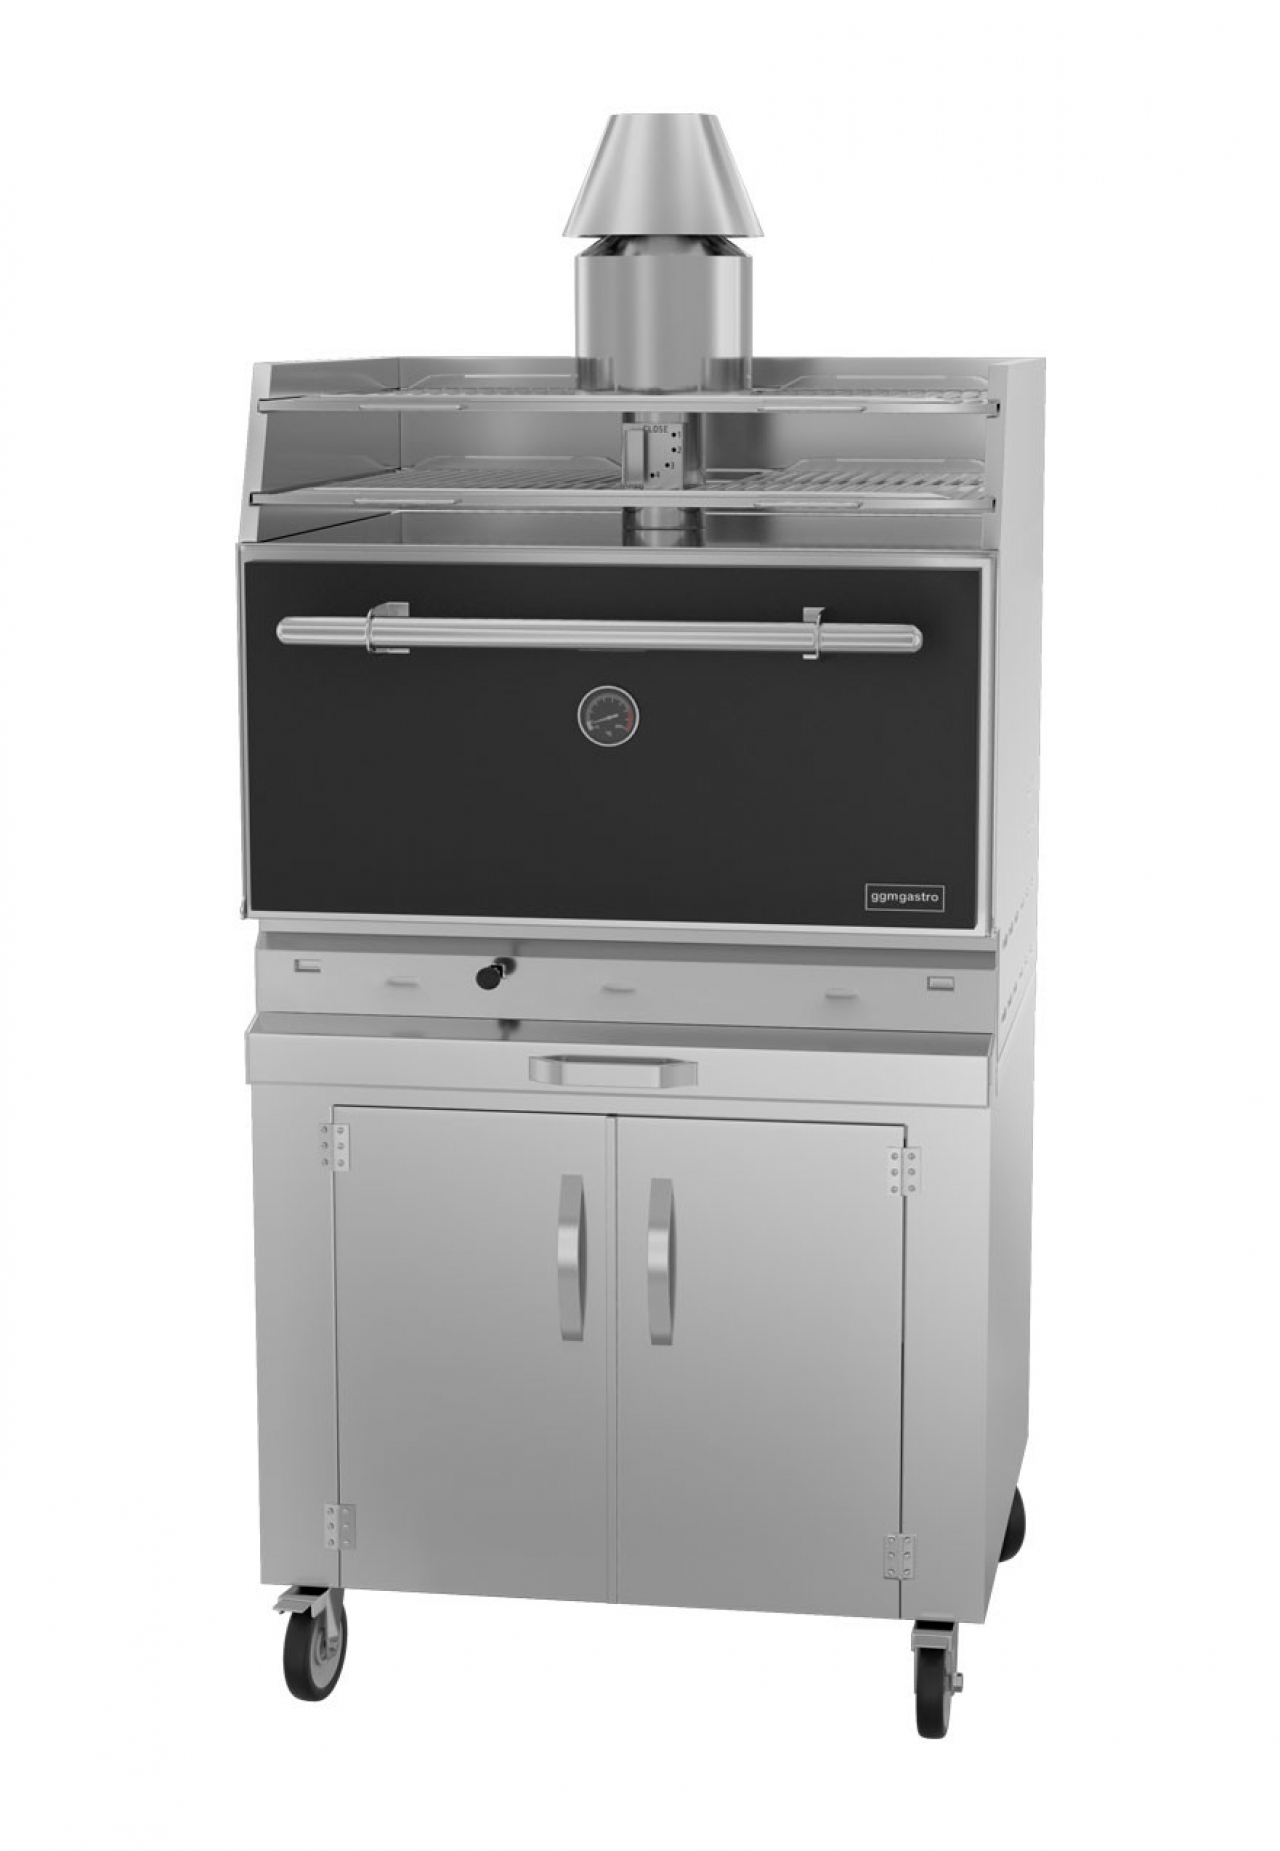 Charcoal oven CHOE881S